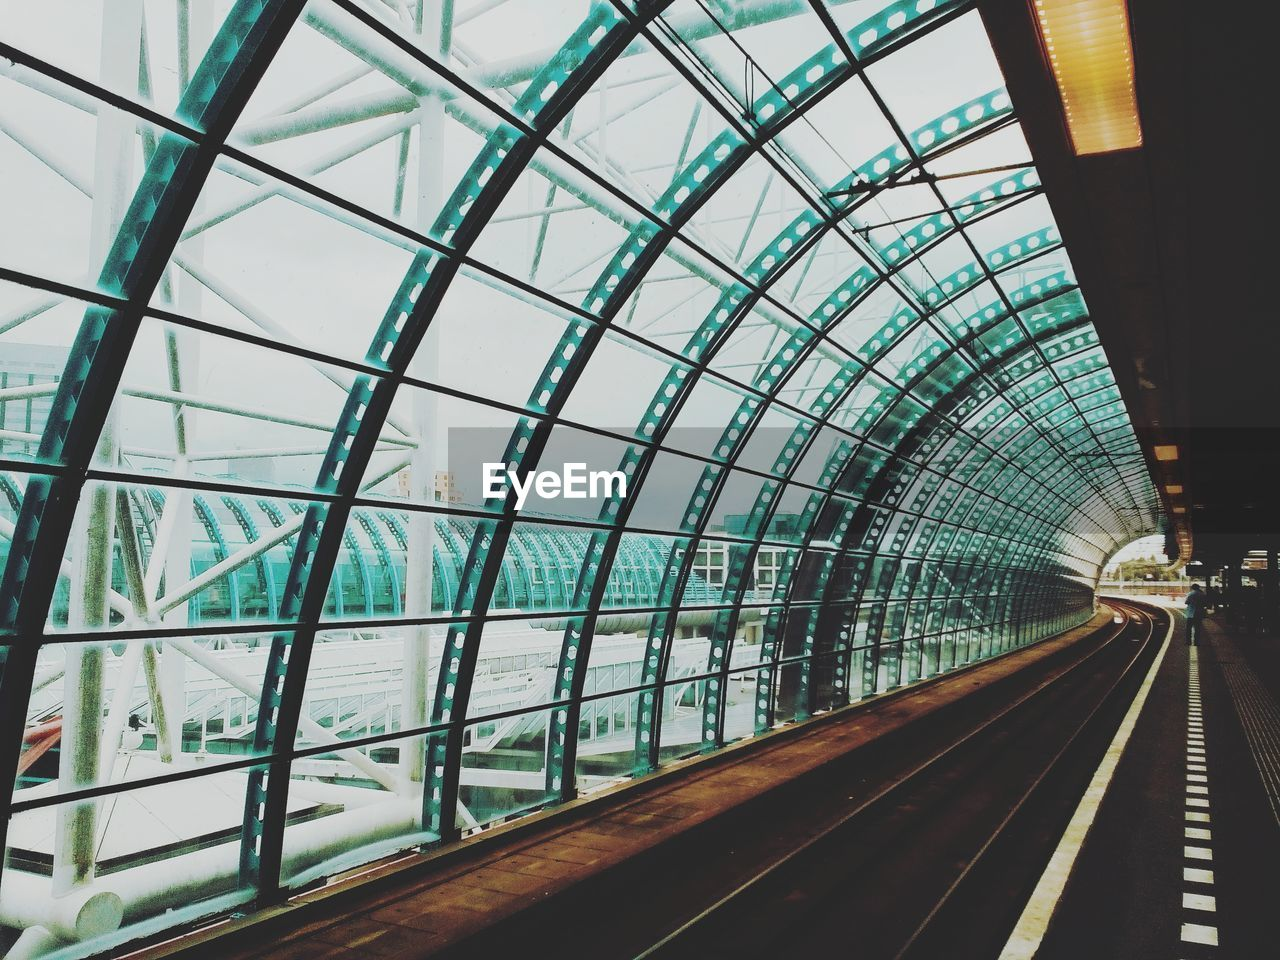 architecture, rail transportation, transportation, track, railroad track, built structure, public transportation, indoors, metal, day, glass - material, mode of transportation, travel, transparent, no people, diminishing perspective, railroad station, bridge, the way forward, modern, ceiling